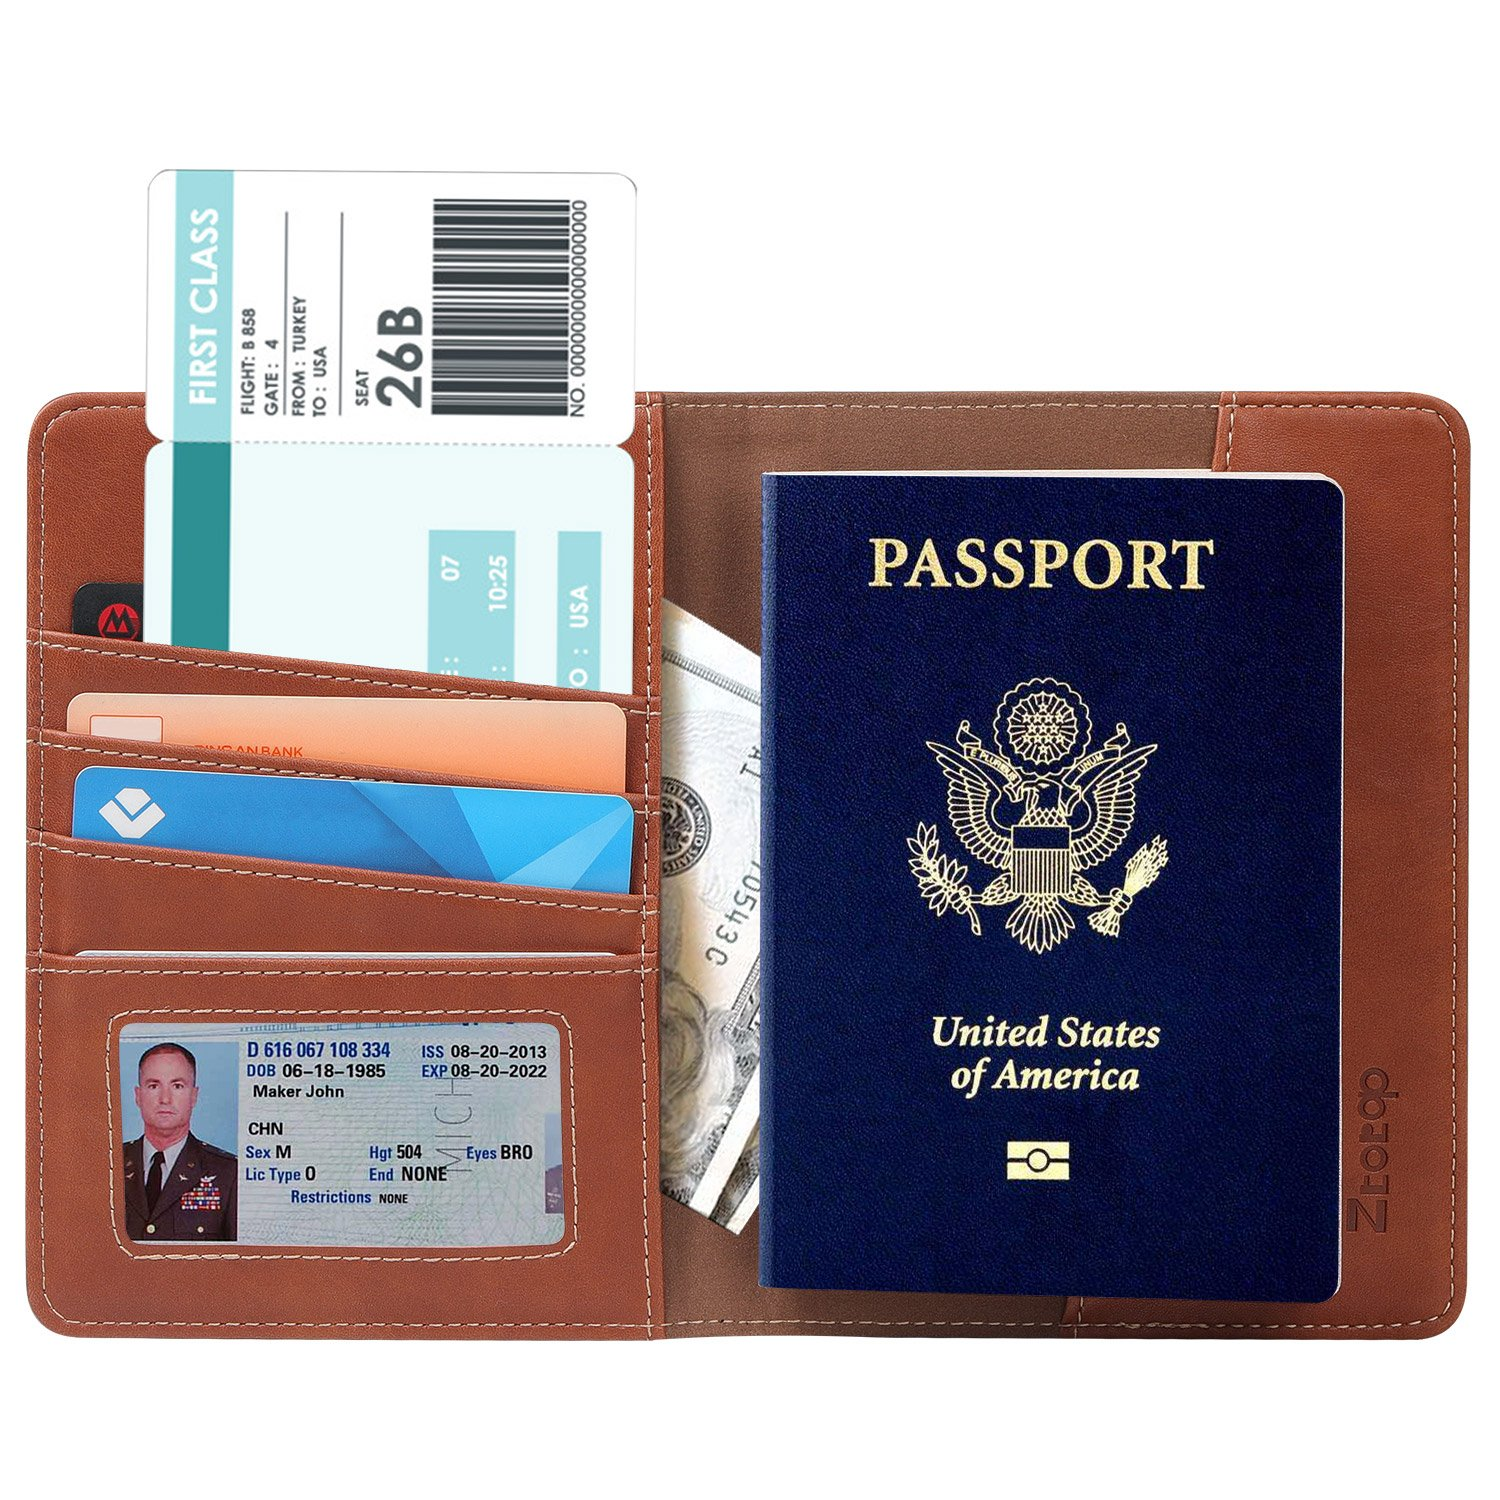 Ztotop Passport Holder Case - Travel Leather Passport Cover with RFID Blocking, Passport Wallet, Brown (ZTHCOVER006) BENAZCAP INTERNATIONAL INC